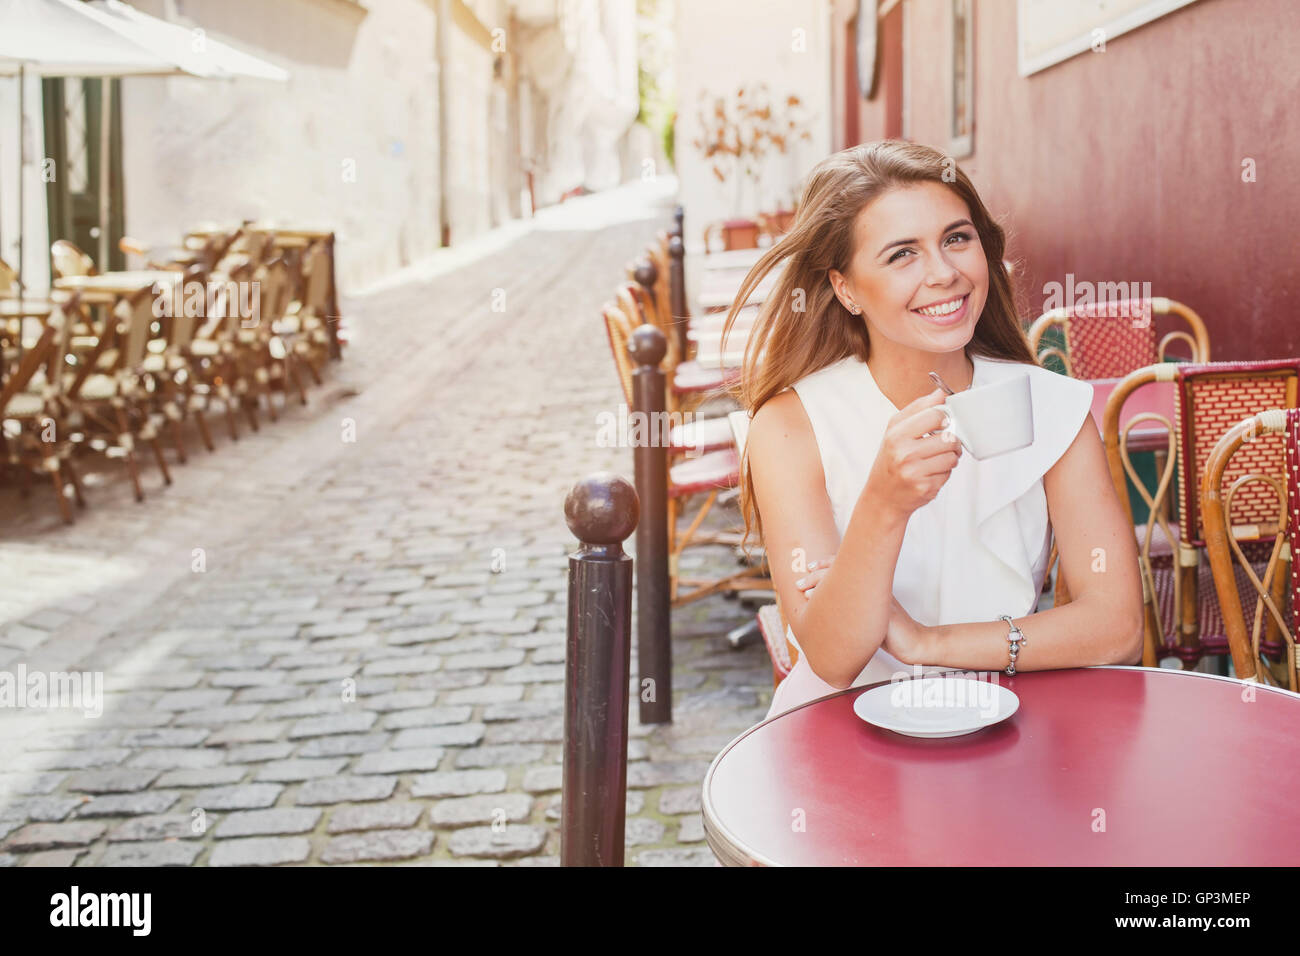 Smiling woman drinking coffee in street cafe Photo Stock